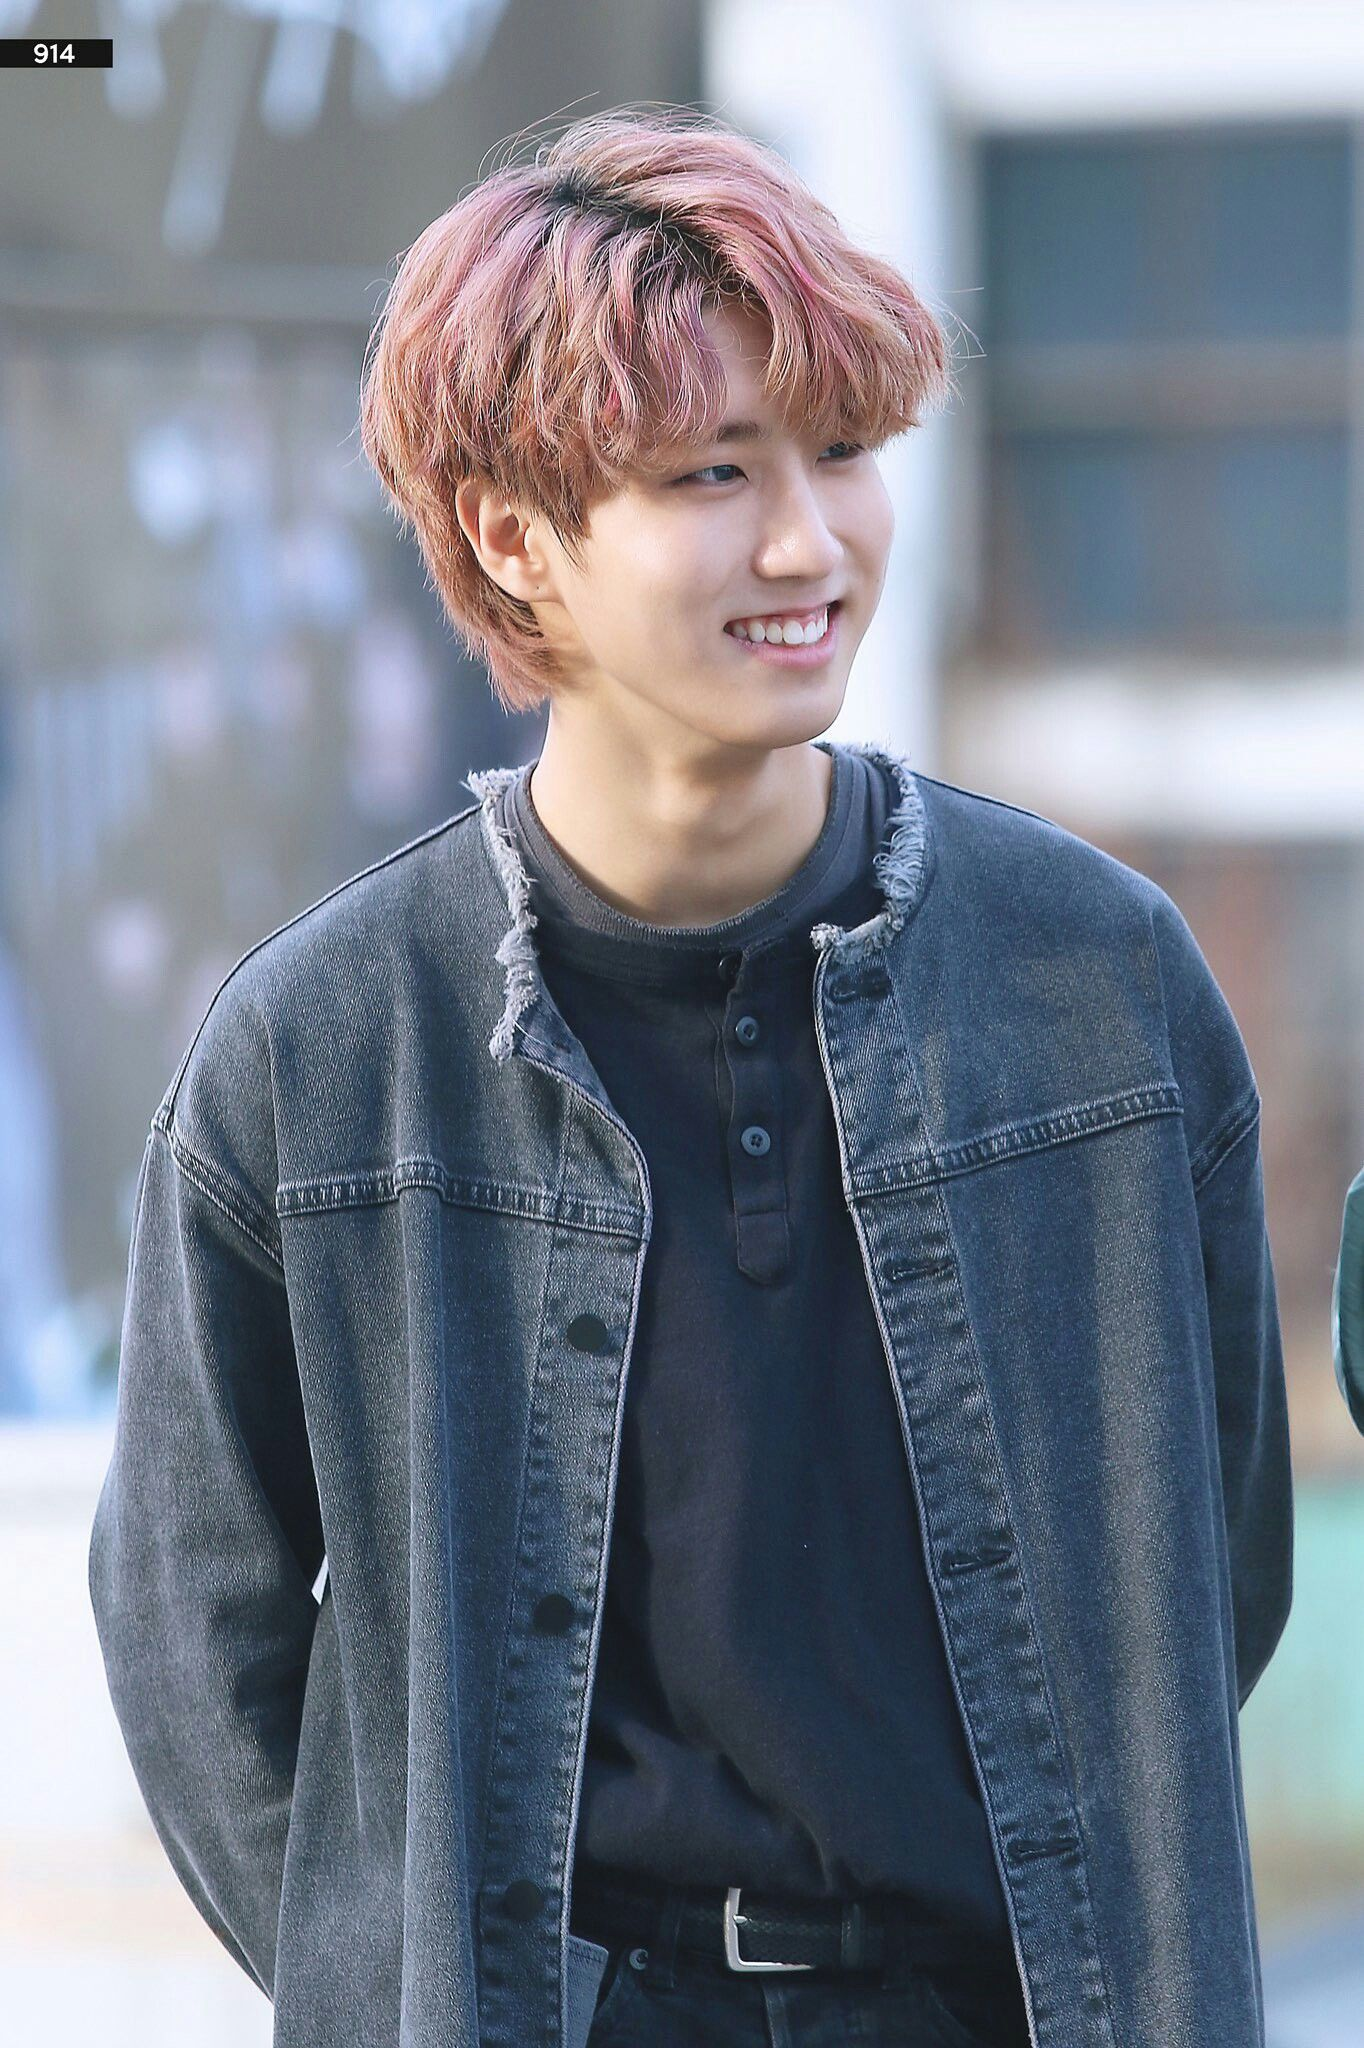 Han Jisung Stray Kids | Kids icon, Kpop guys, Stray